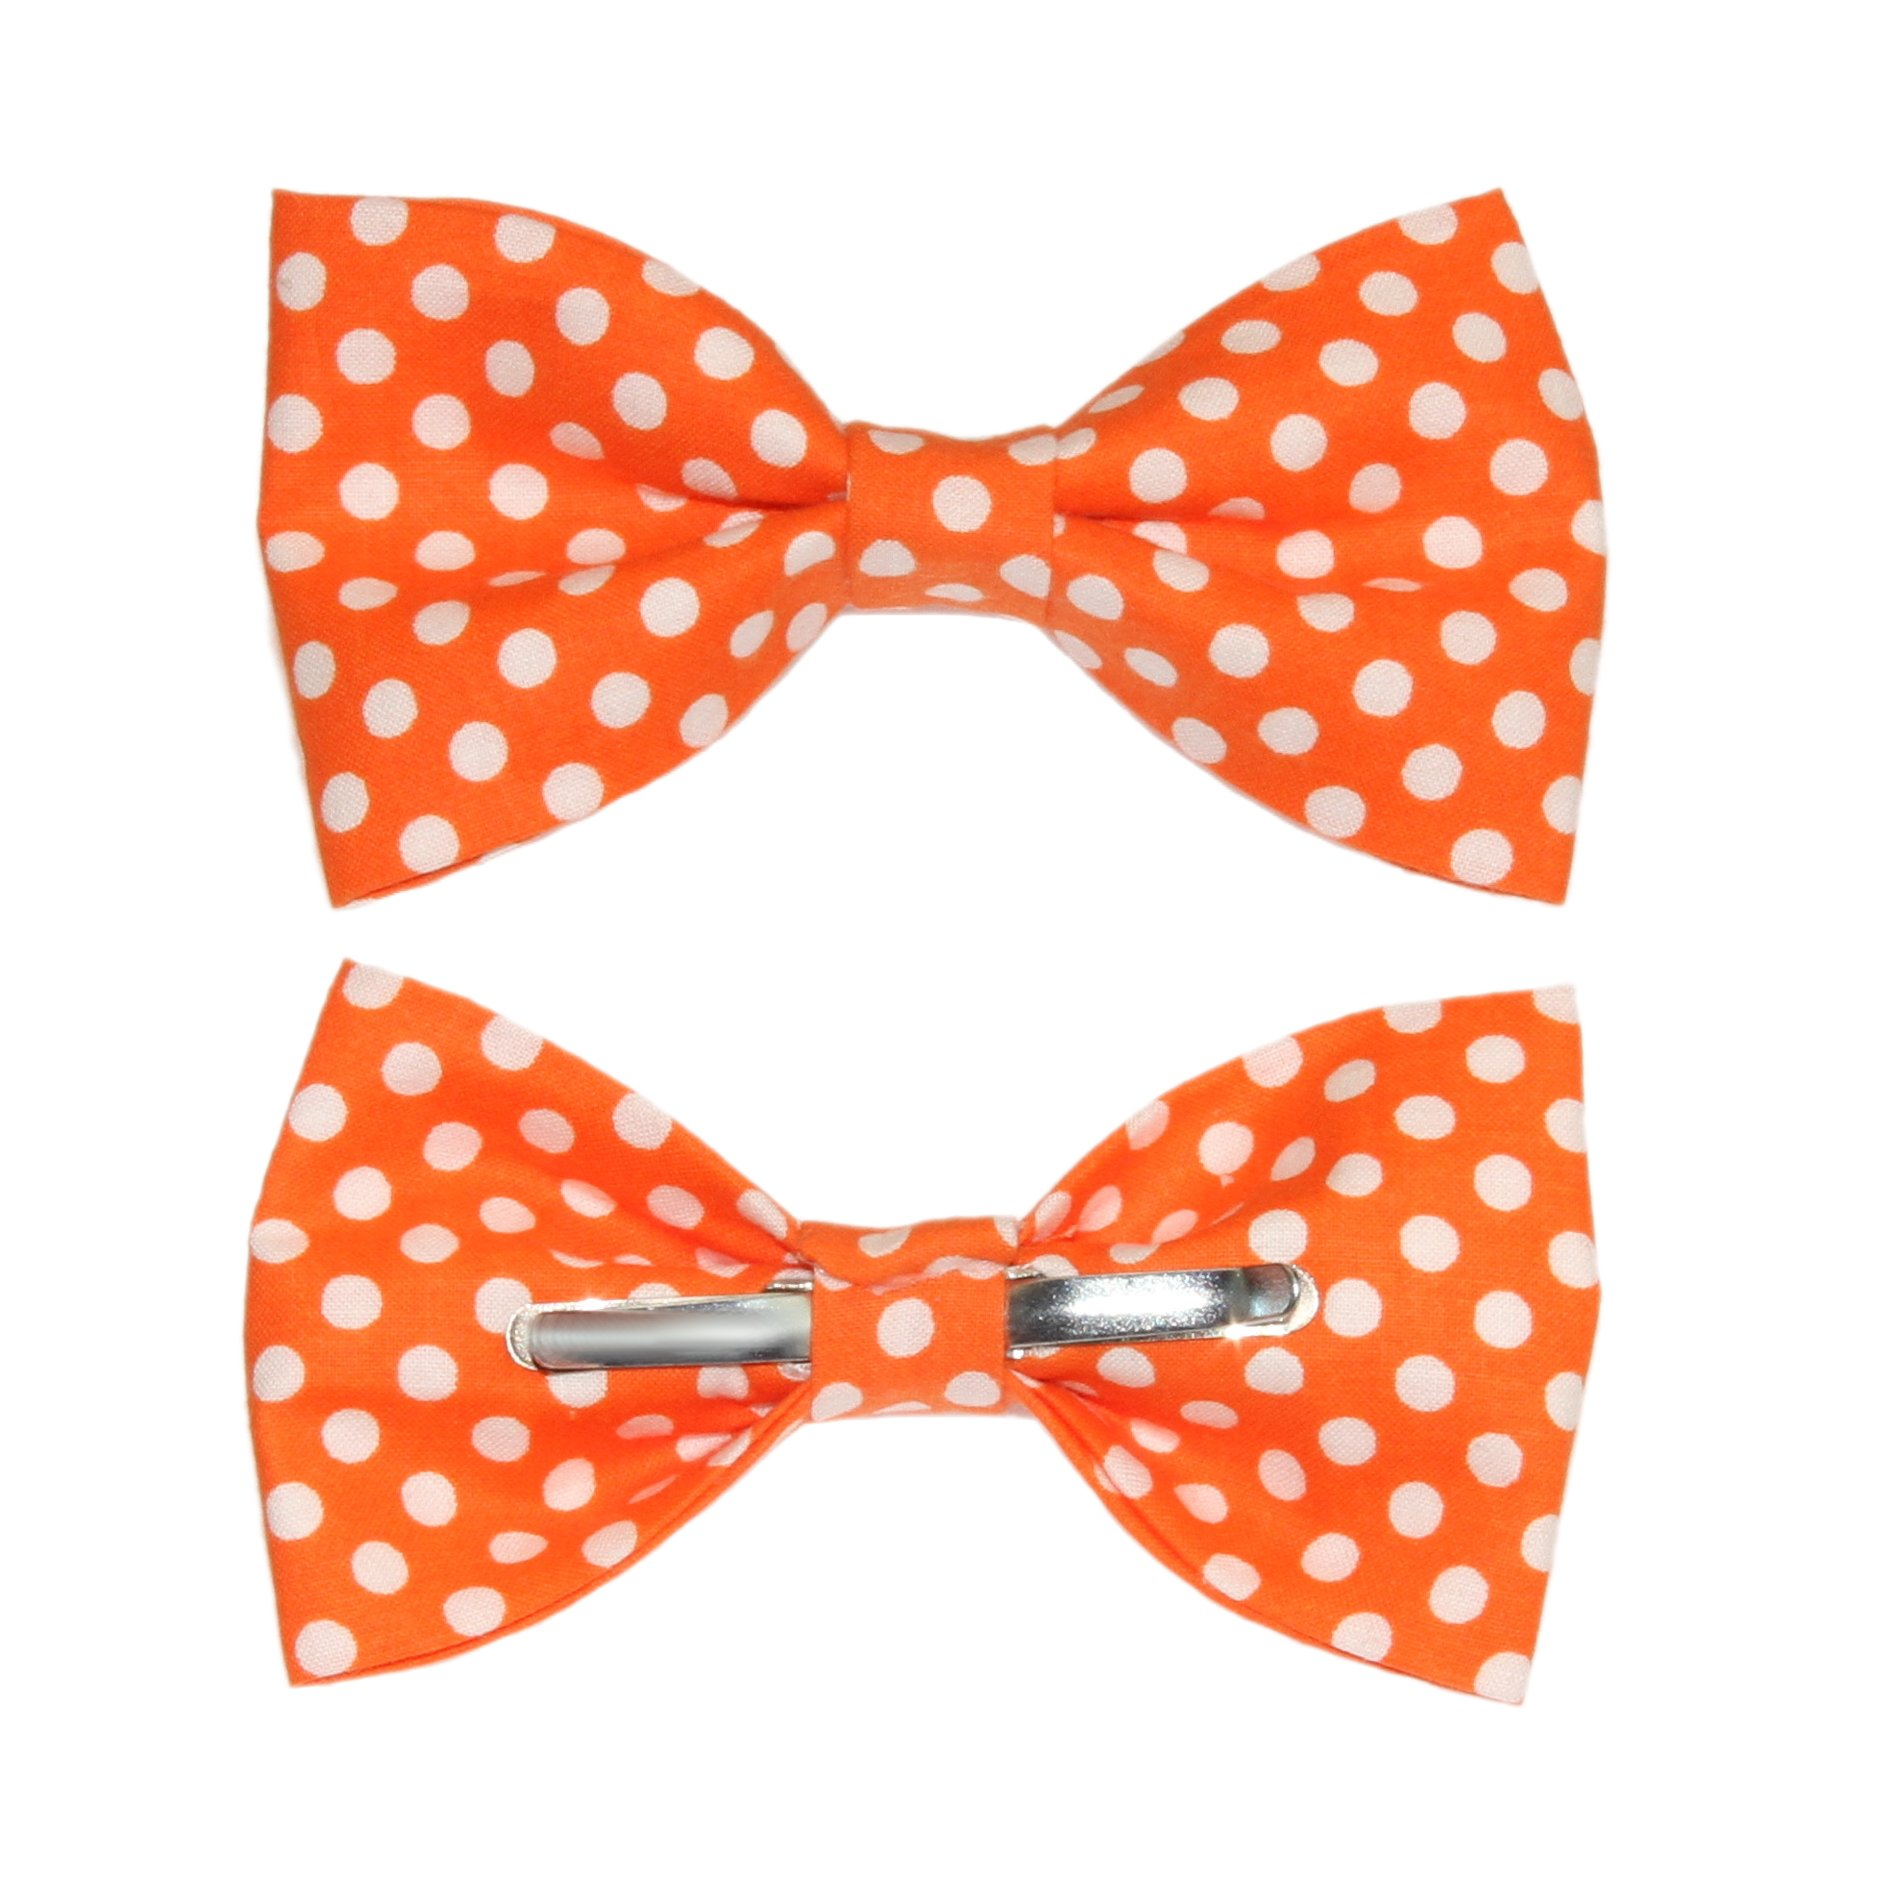 amy2004marie Men's Tangerine Orange With White Dots Clip On Cotton Bow Tie